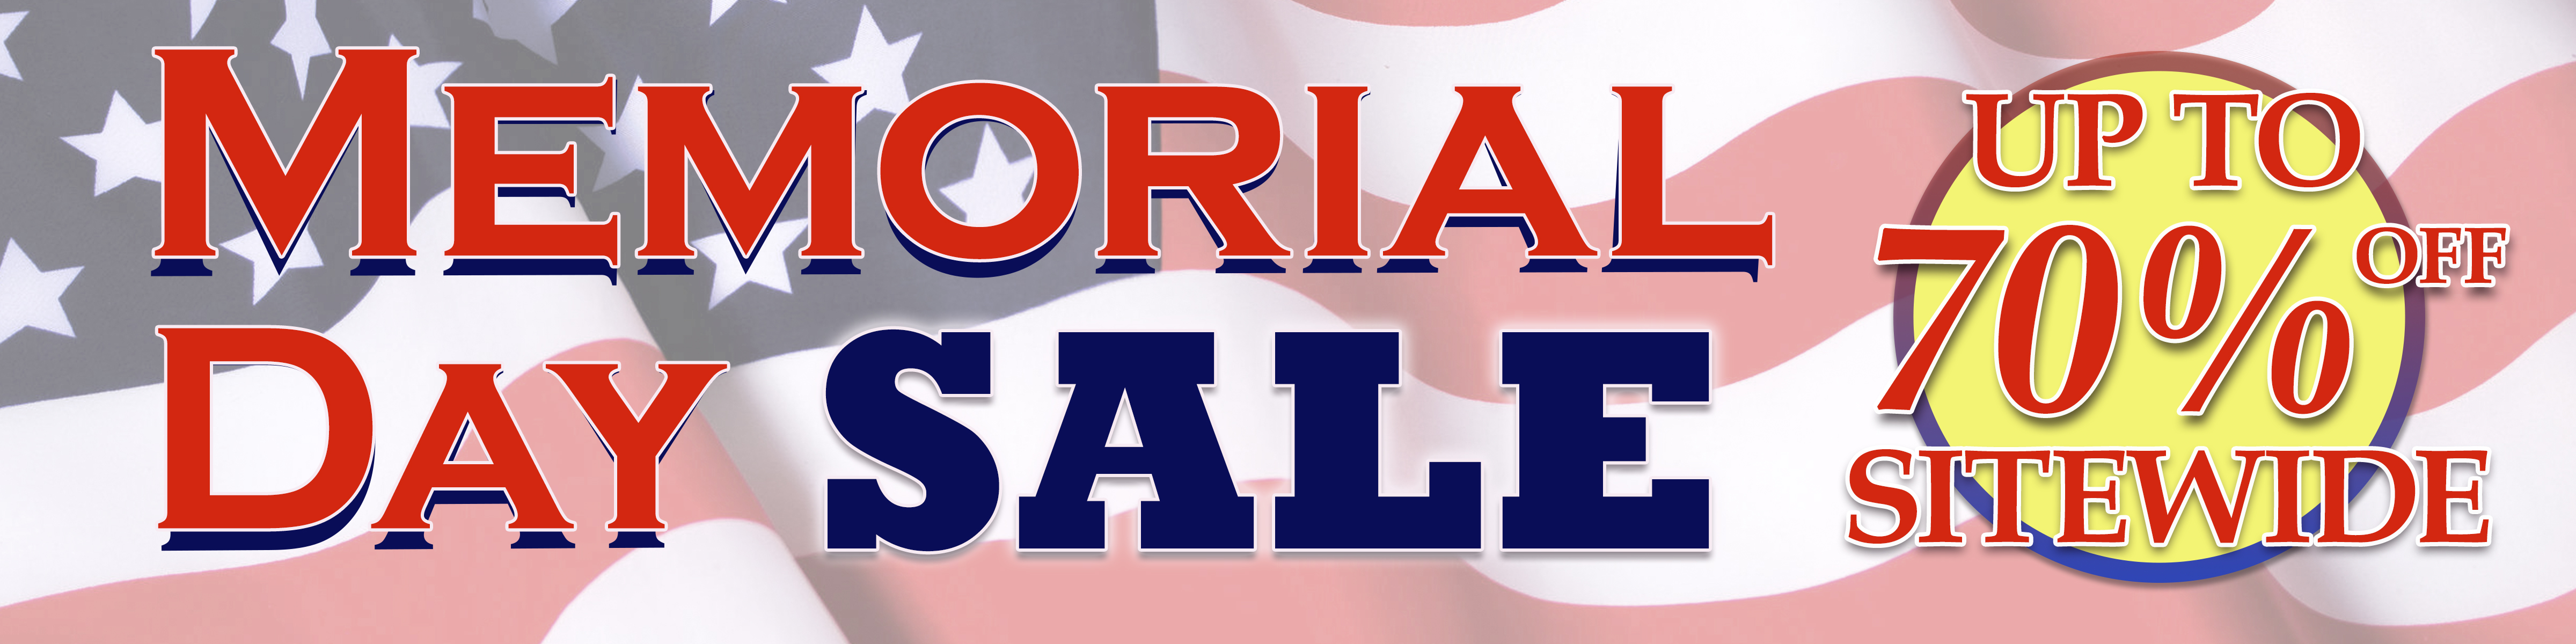 Sitewide Memorial Day Sale up to 70% Off!